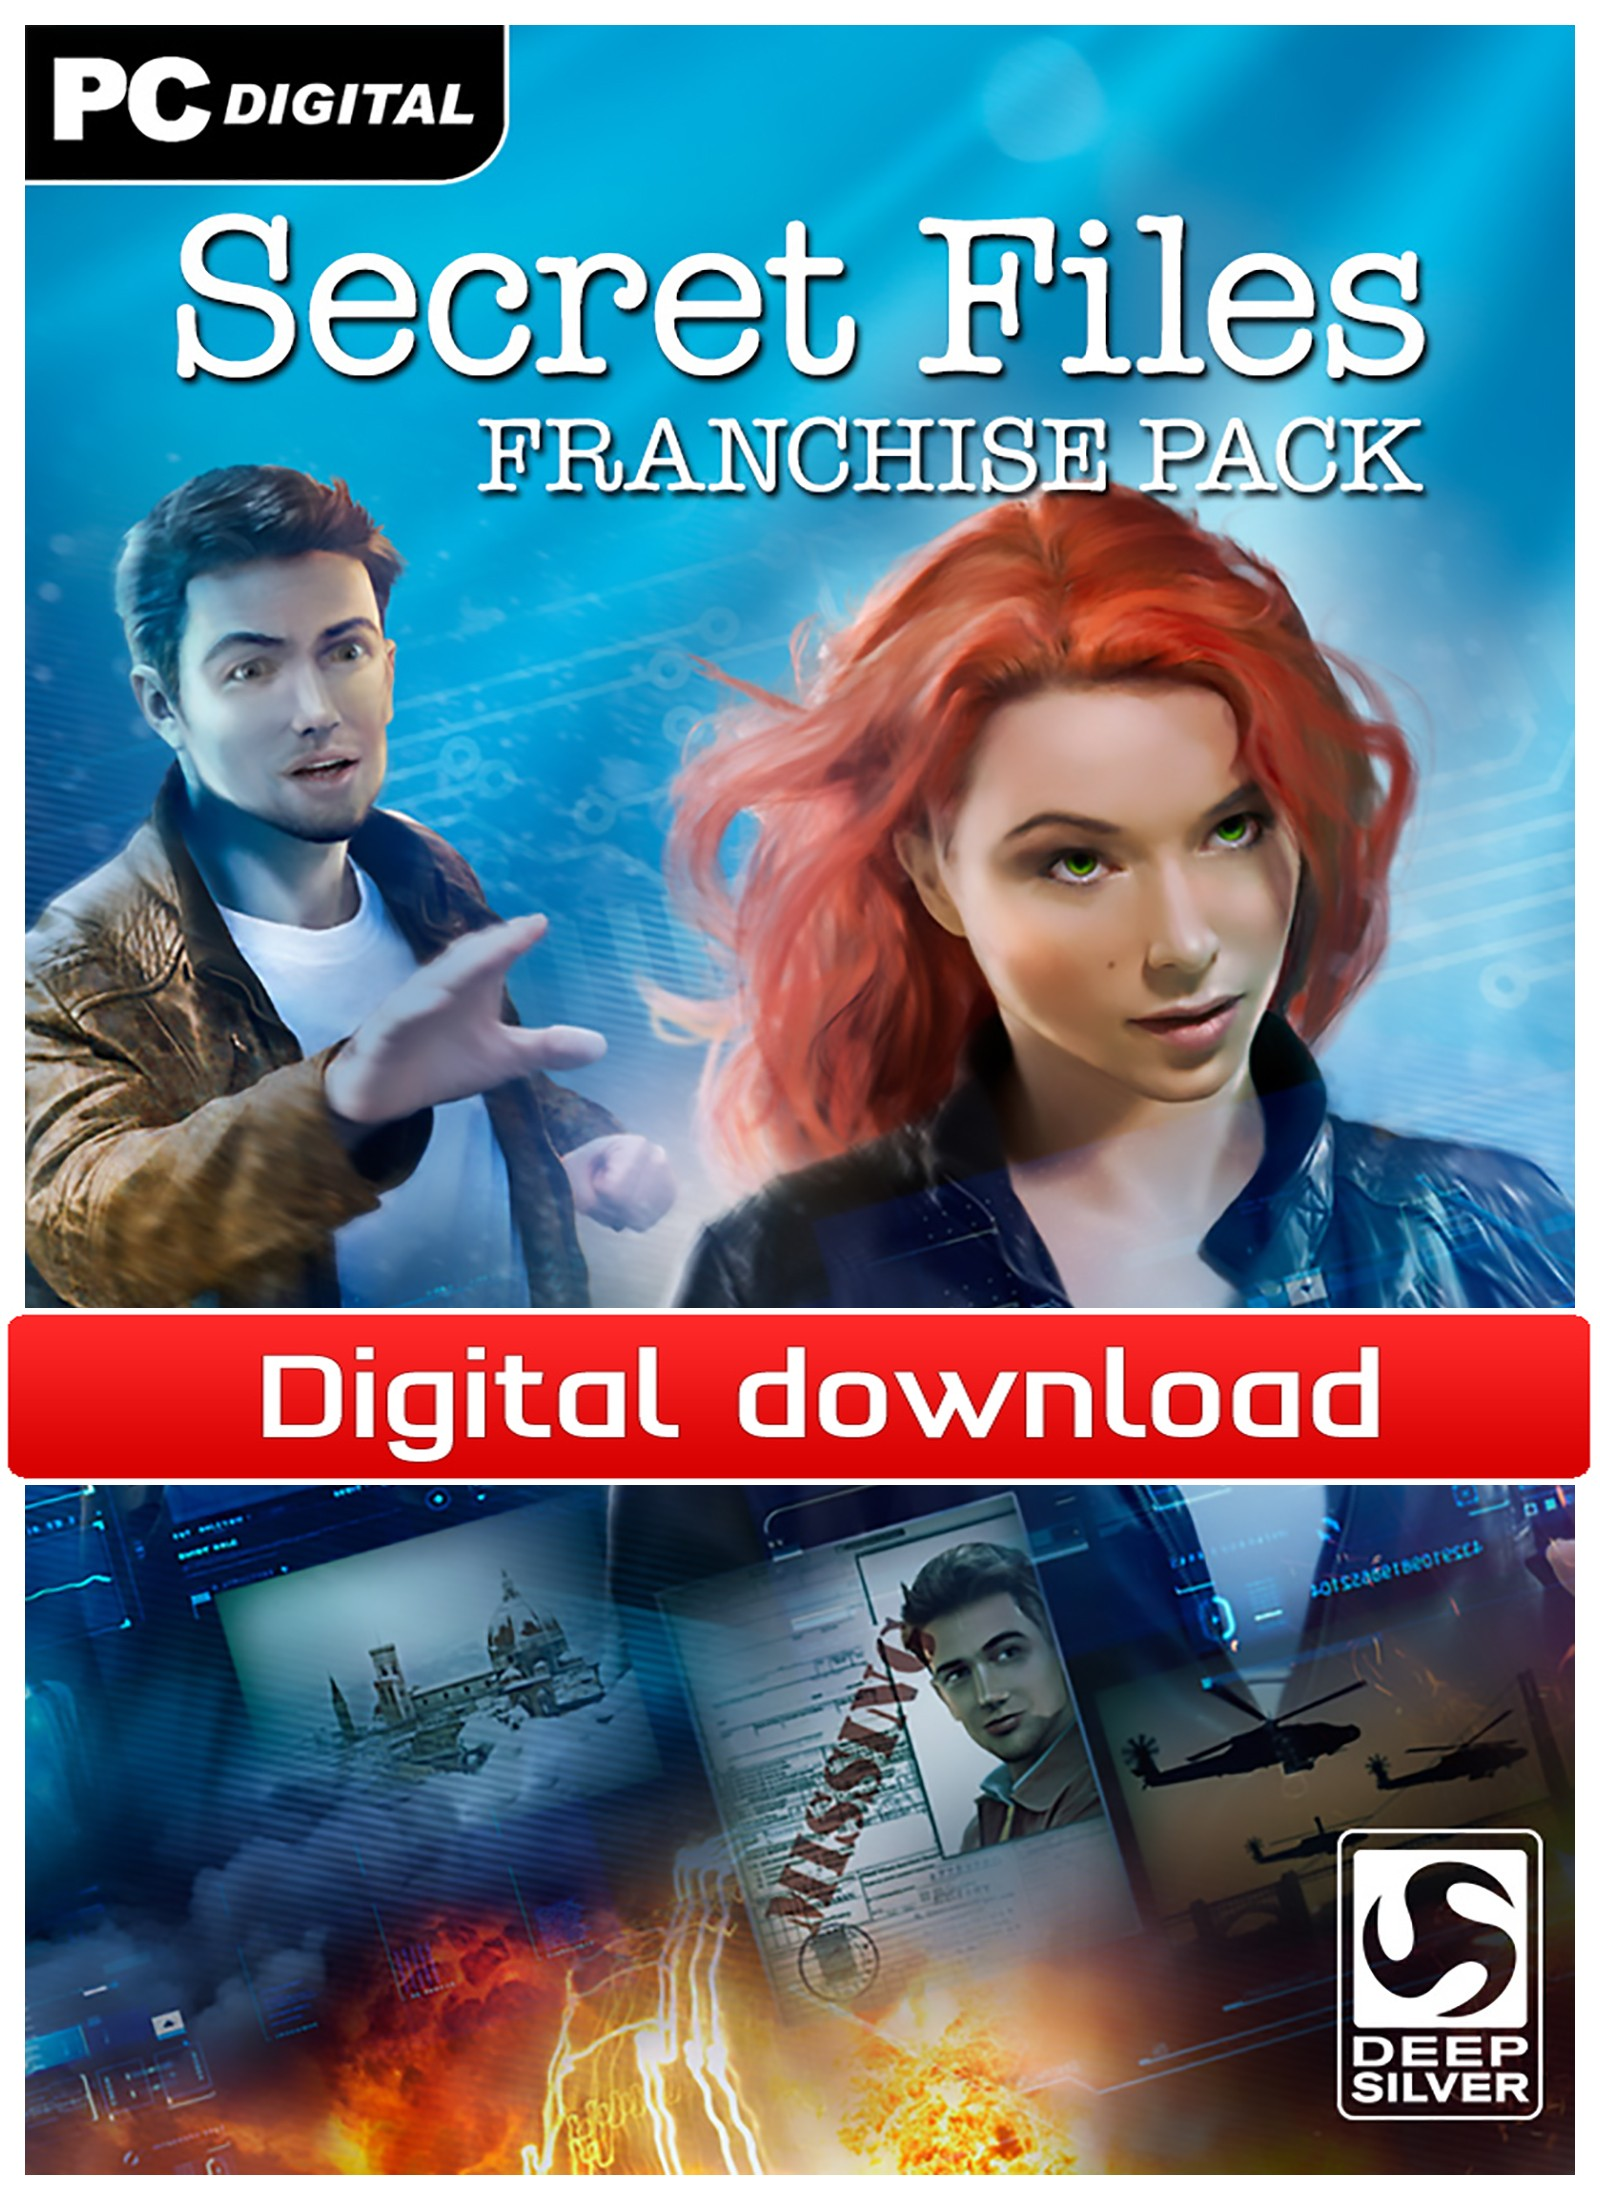 34261 : Secret Files Franchise Pack (PC nedlastning)